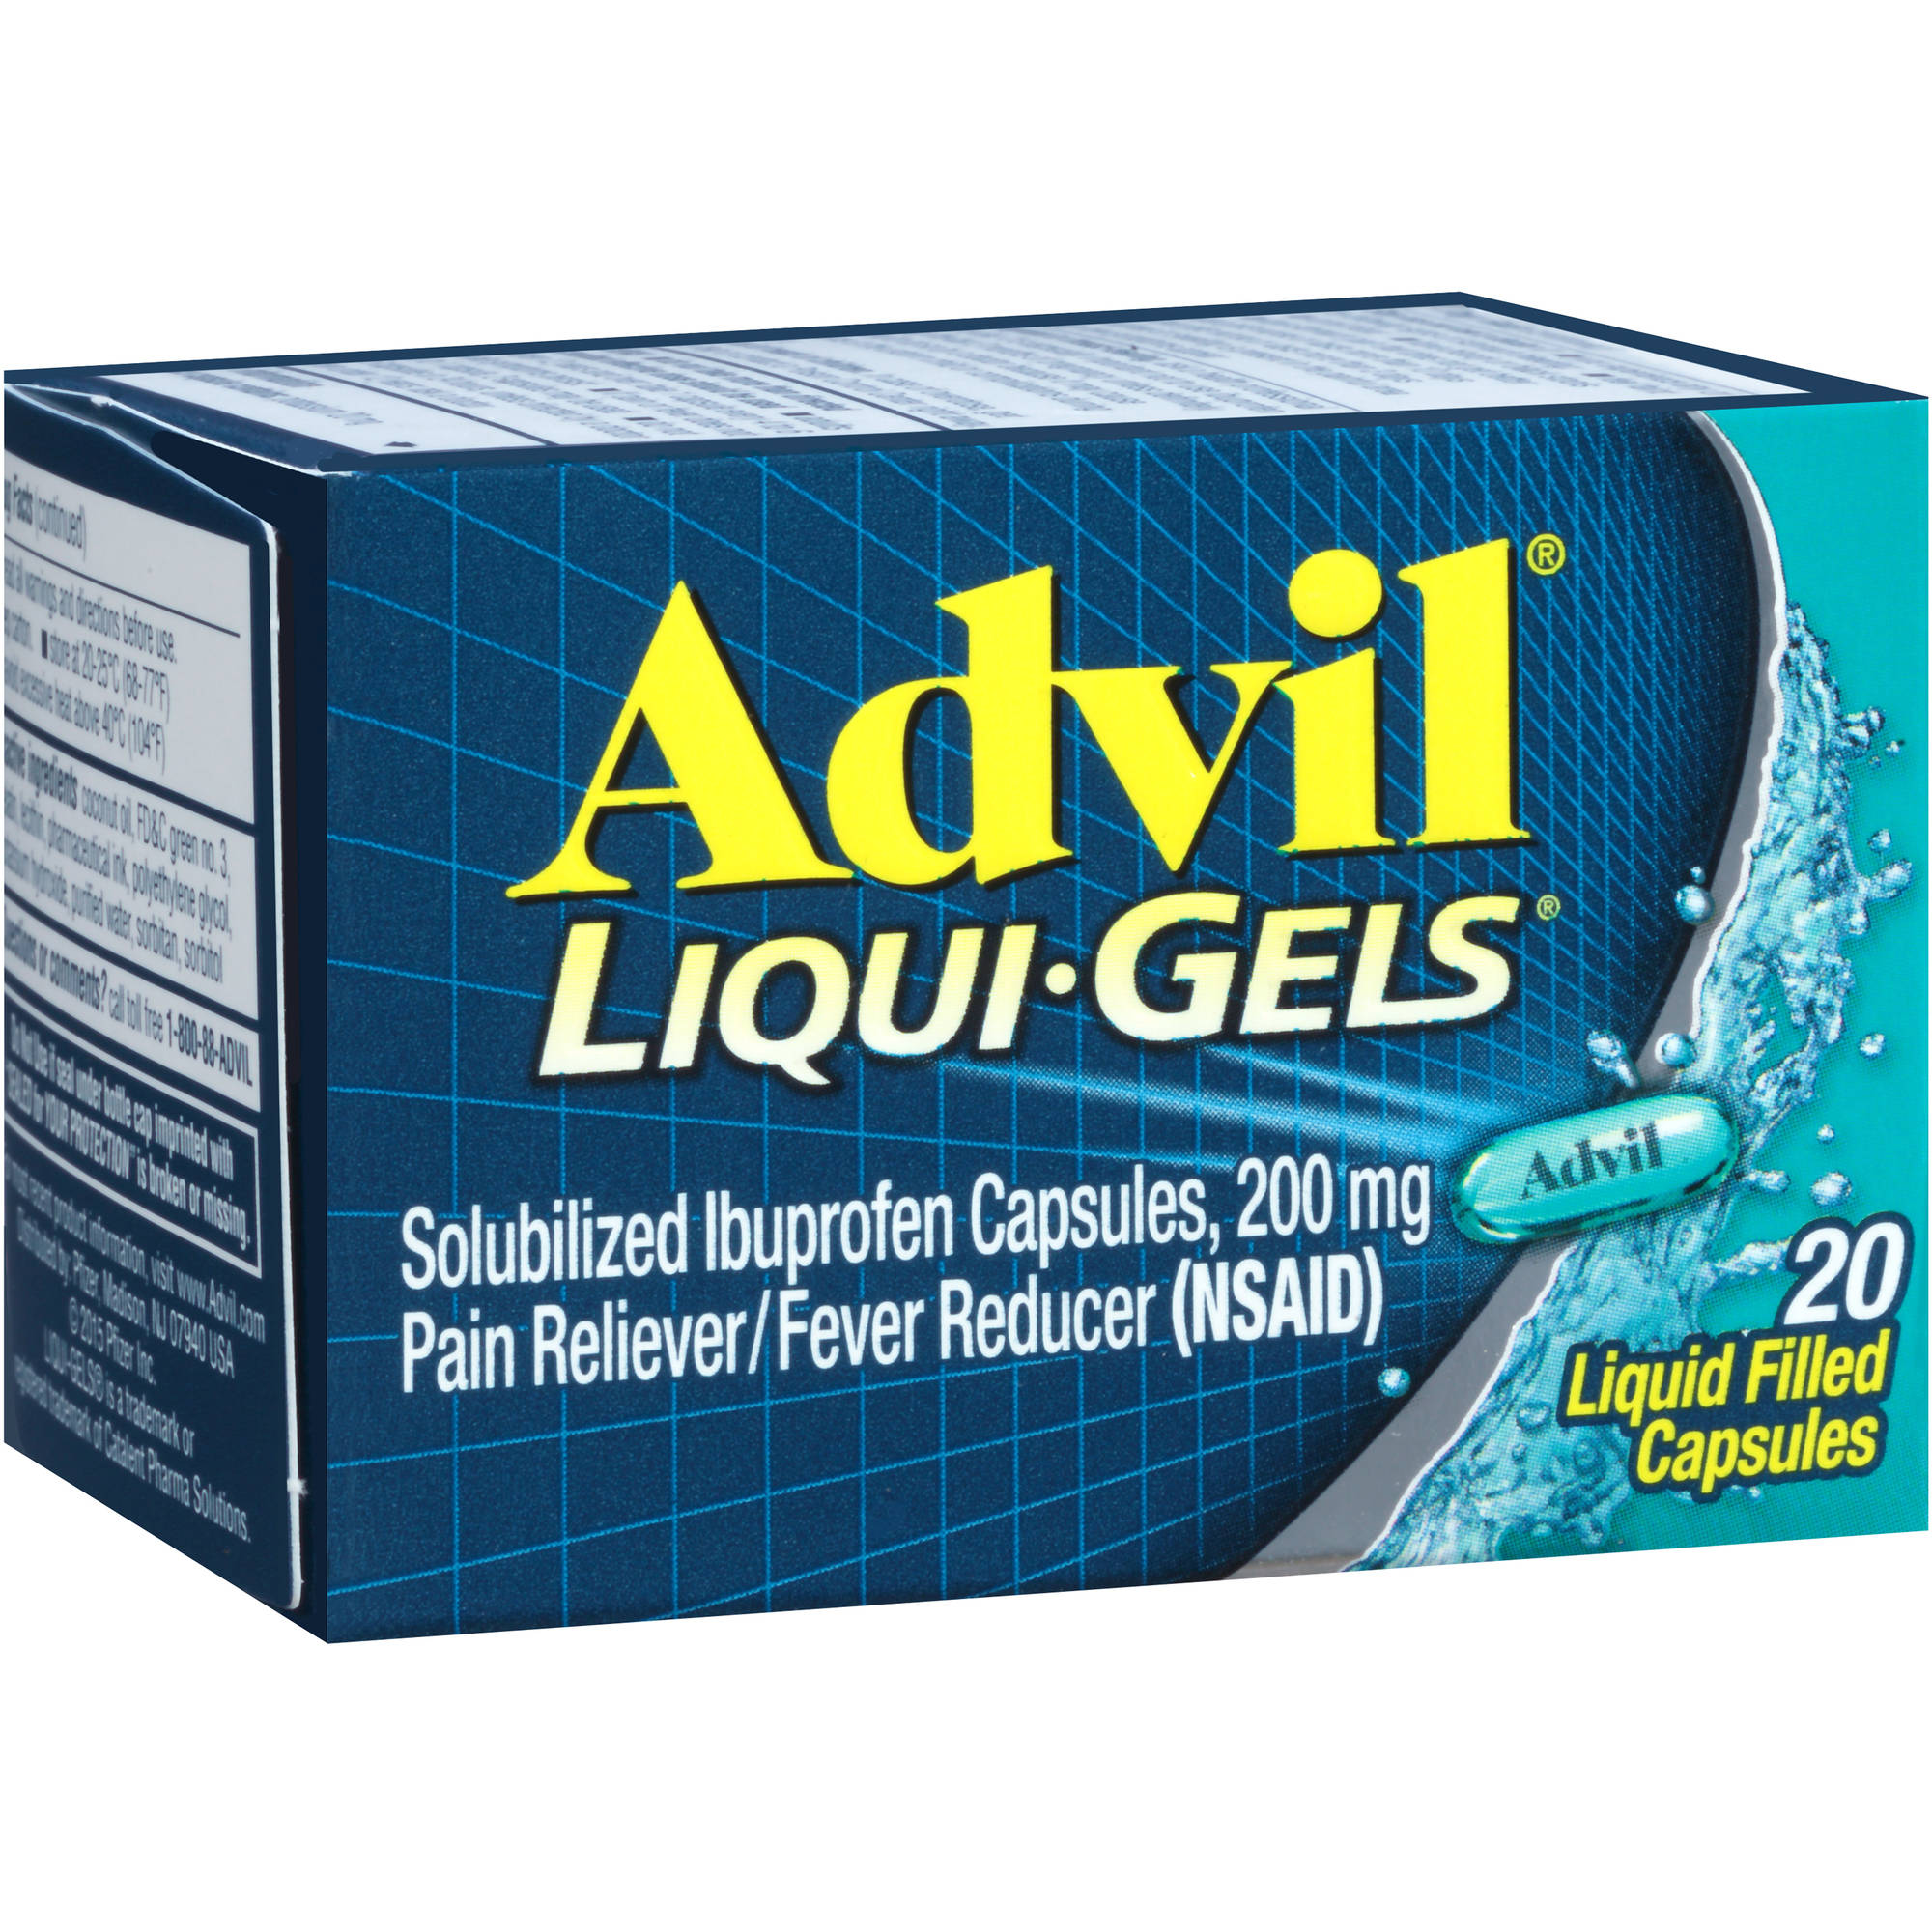 Advil Liqui-Gels Pain Reliever / Fever Reducer (Ibuprofen), 200 mg 20 count